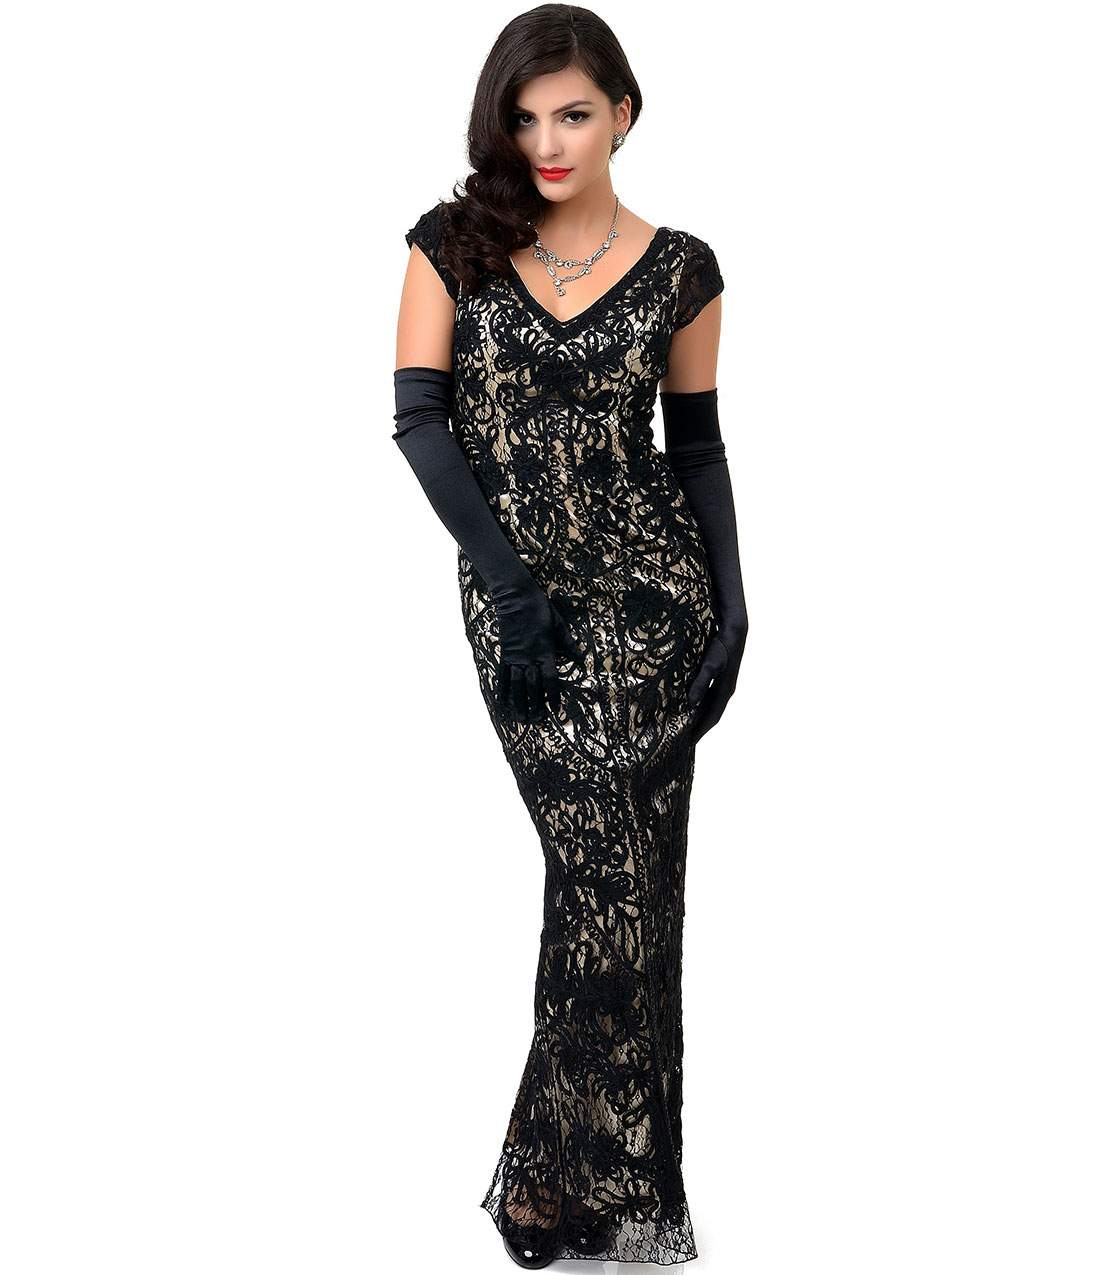 Vintage Evening Dresses and Formal Evening Gowns 1930S Style Black  Nude Lace Cap Sleeve Fitted Gown $132.00 AT vintagedancer.com